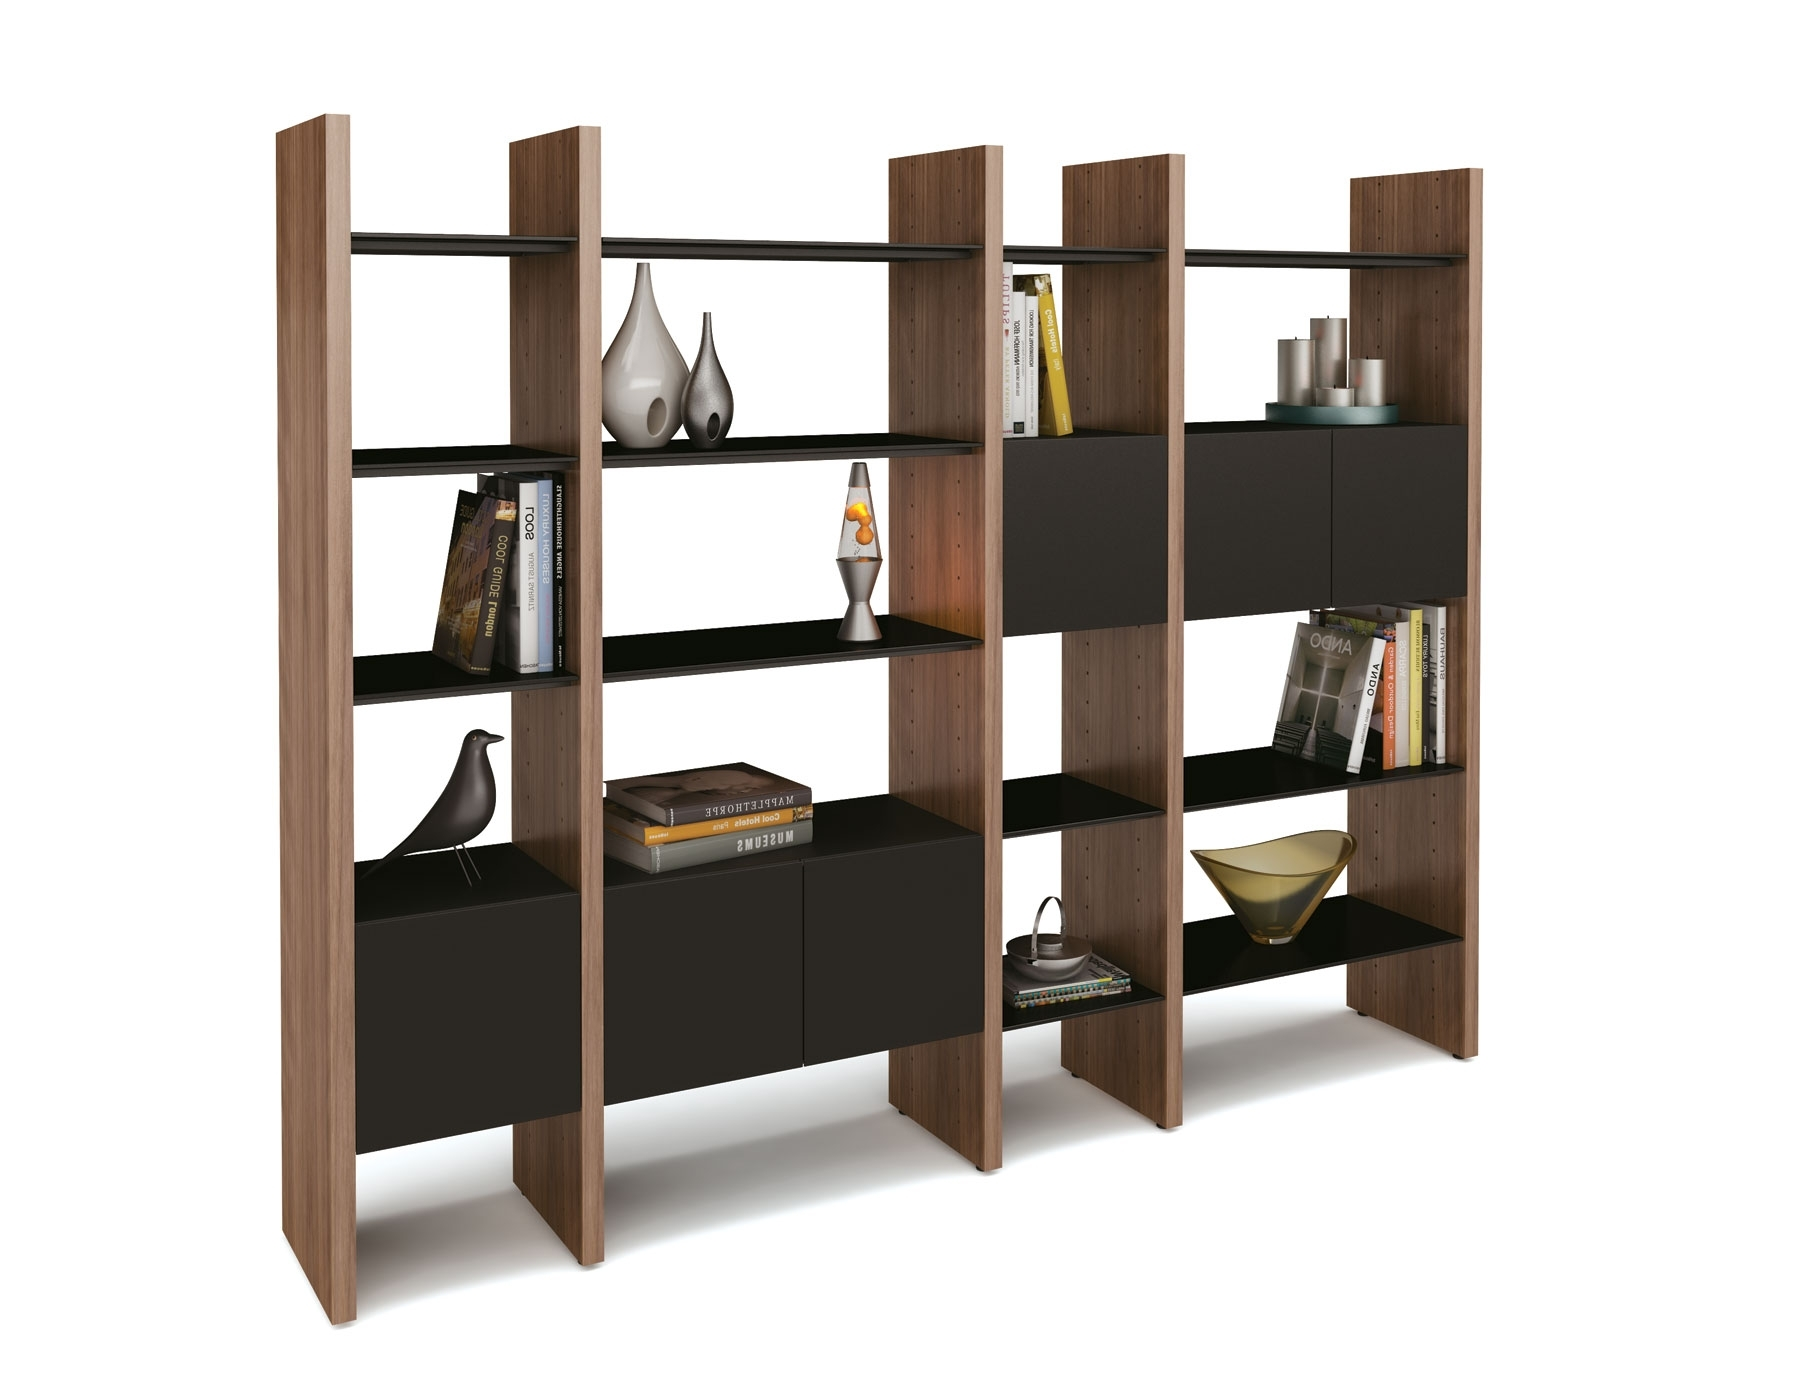 Contemporary Oak Shelving Units With Regard To Current Outstanding Modern Shelving Units With Wooden Divider In Brown (View 8 of 15)